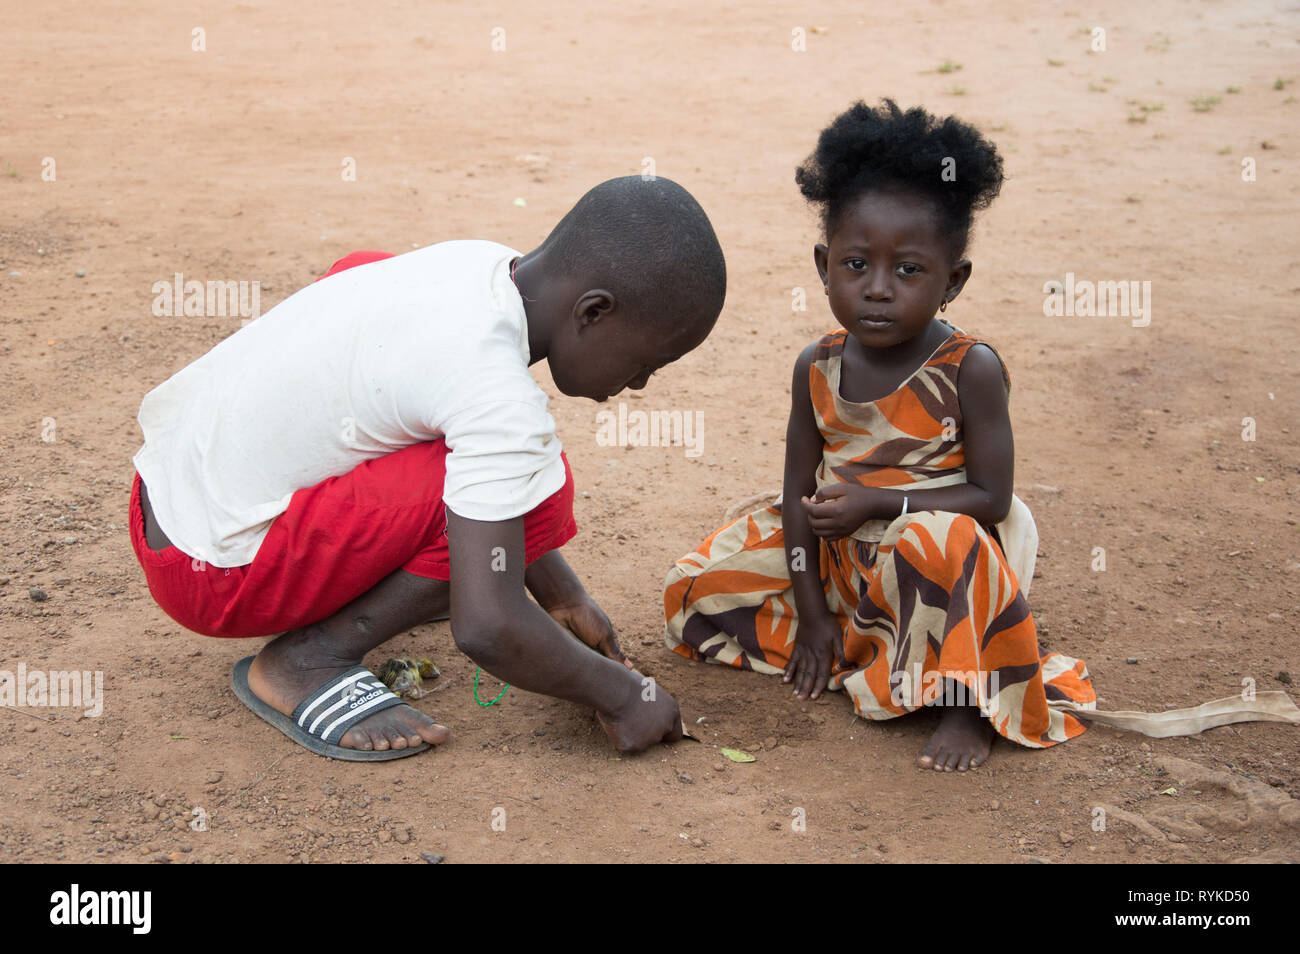 Anekro, Ivory Coast - August 20, 2015: Two children play in the street, the two crouched, hands on the floor and the little girl looks at the camera Stock Photo